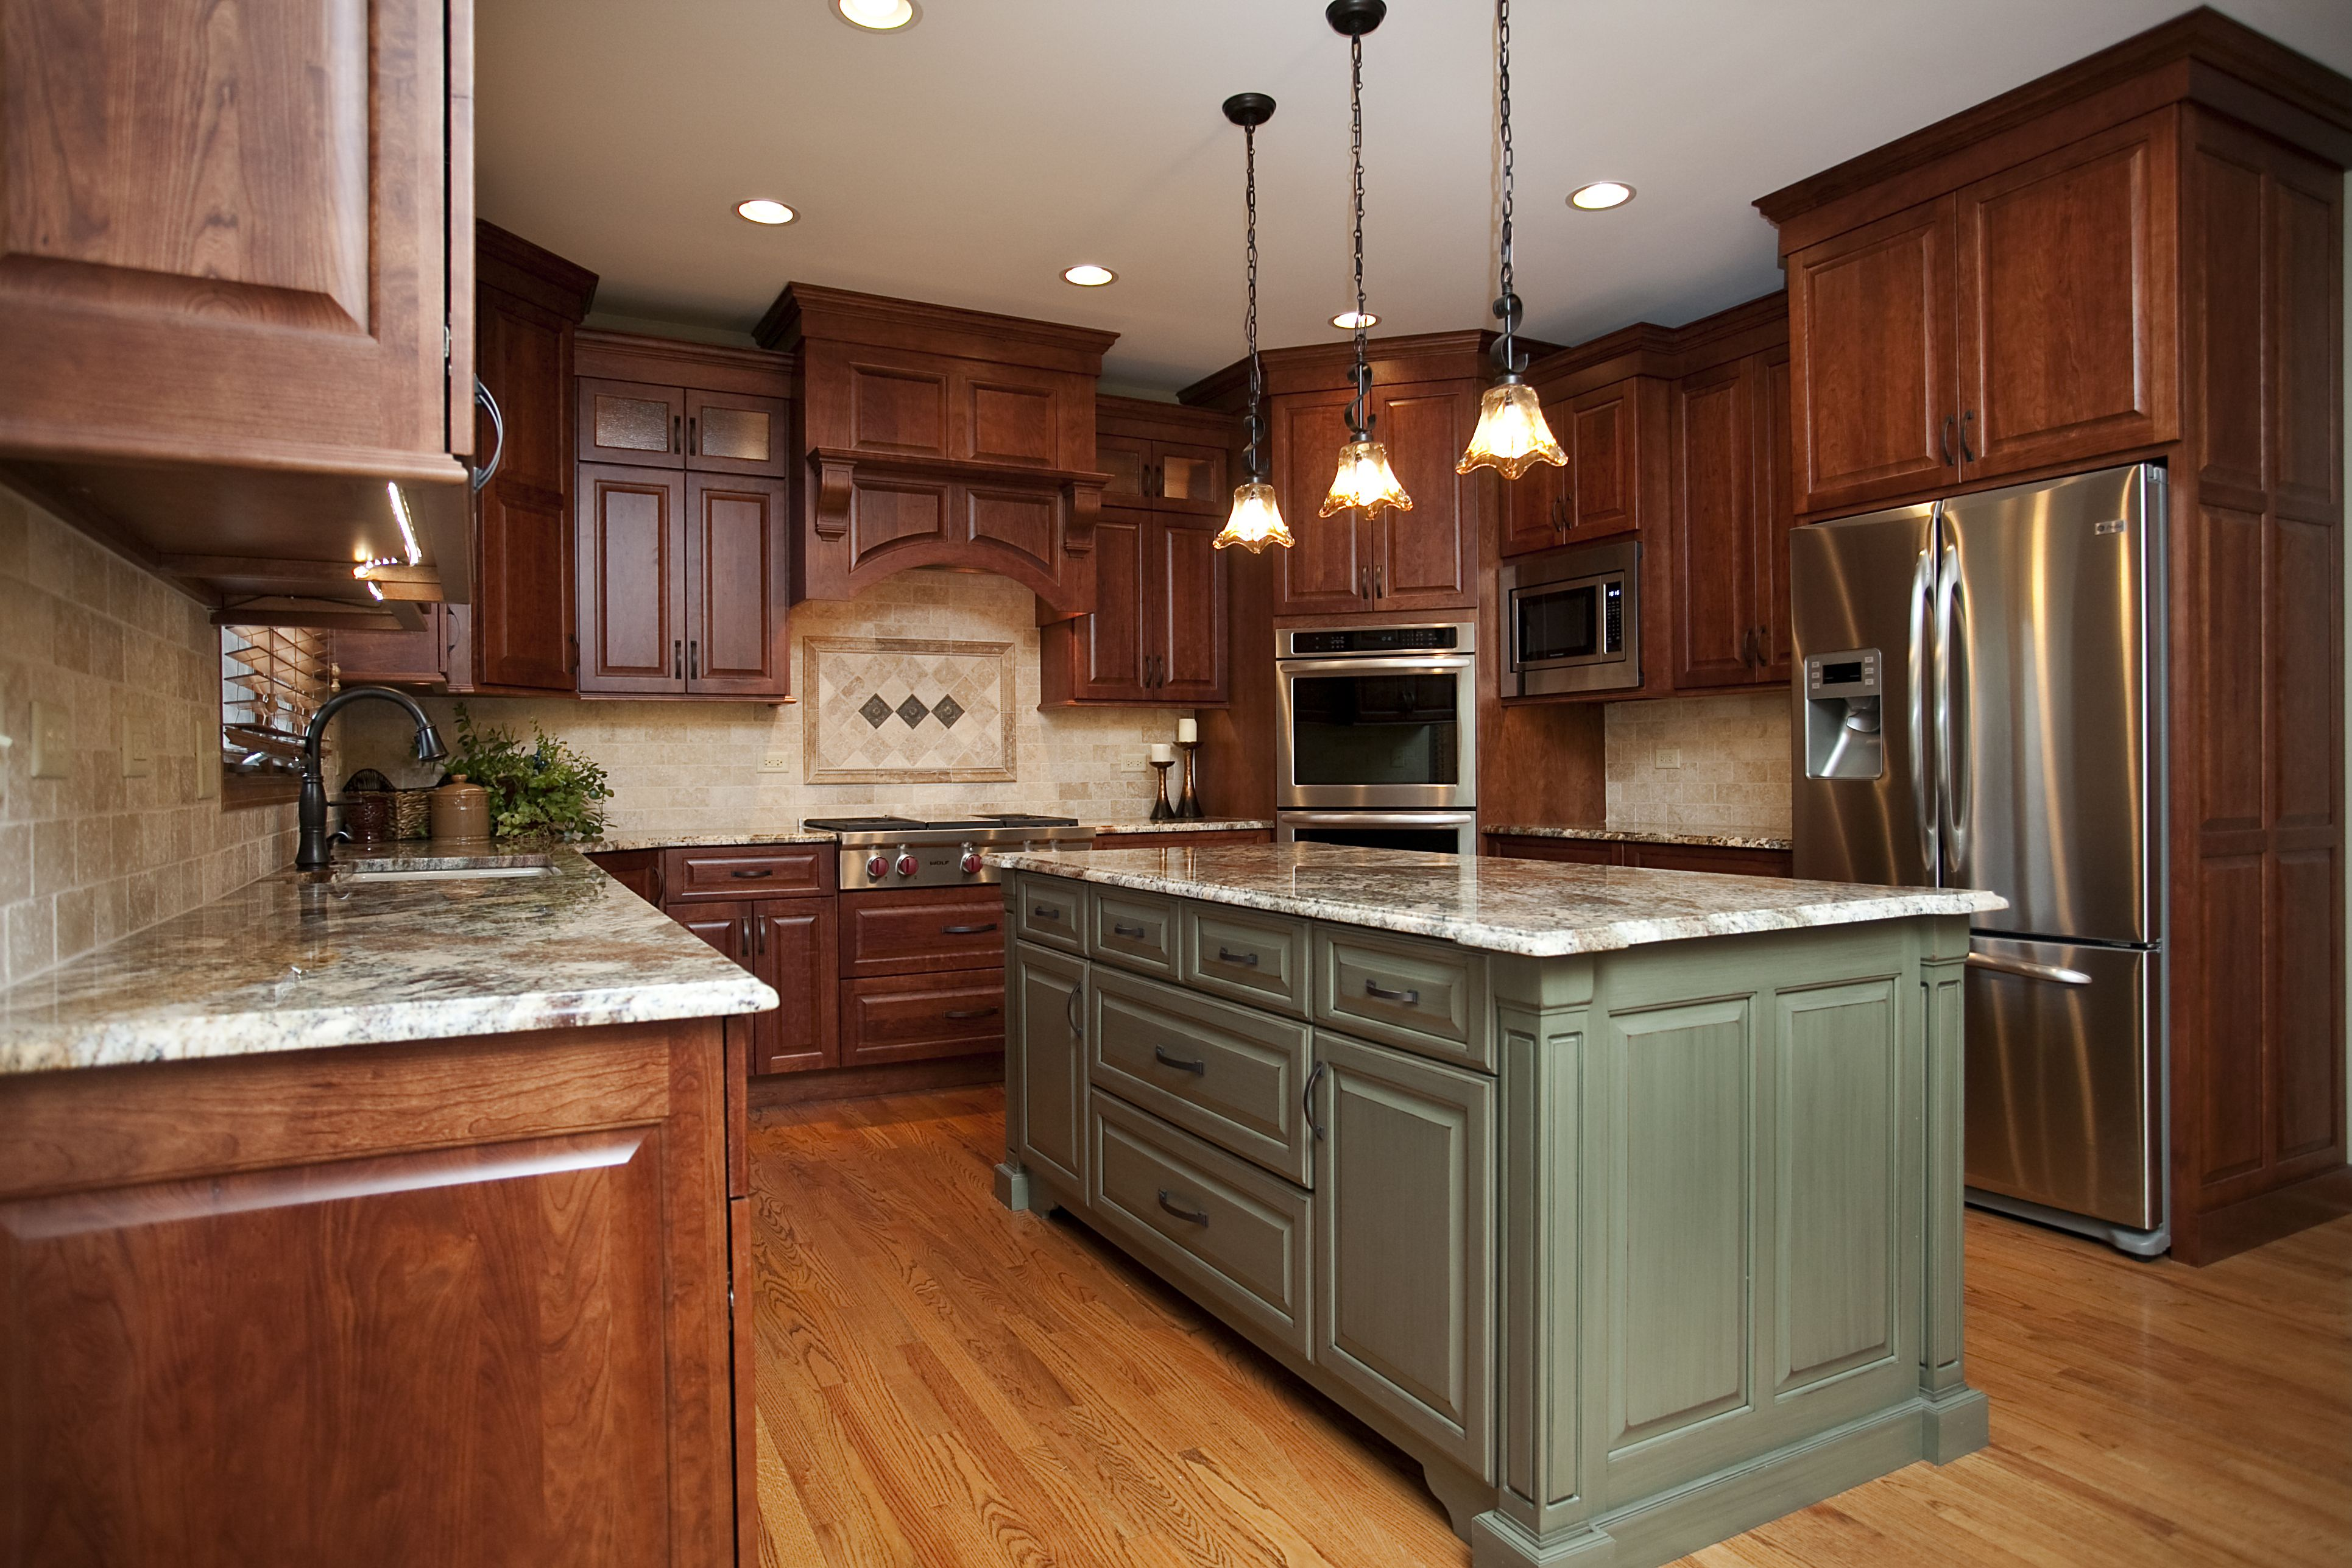 2465a9204b49f26b9a7066d4f1875f4e Painted Oak Kitchen Remodel Ideas on oak country kitchens, family room remodel ideas, living room remodel ideas, contemporary kitchen backsplash ideas, den remodel ideas, oak kitchen renovation, fireplace remodel ideas, oak kitchen islands, pool remodel ideas, garage remodel ideas, kitchen range ideas, painted kitchen cabinet ideas, oak decorating ideas, deck remodel ideas, dining room remodel ideas, furnace remodel ideas, furniture remodel ideas, oak fireplace ideas, shower remodel ideas, oak kitchen cabinets,